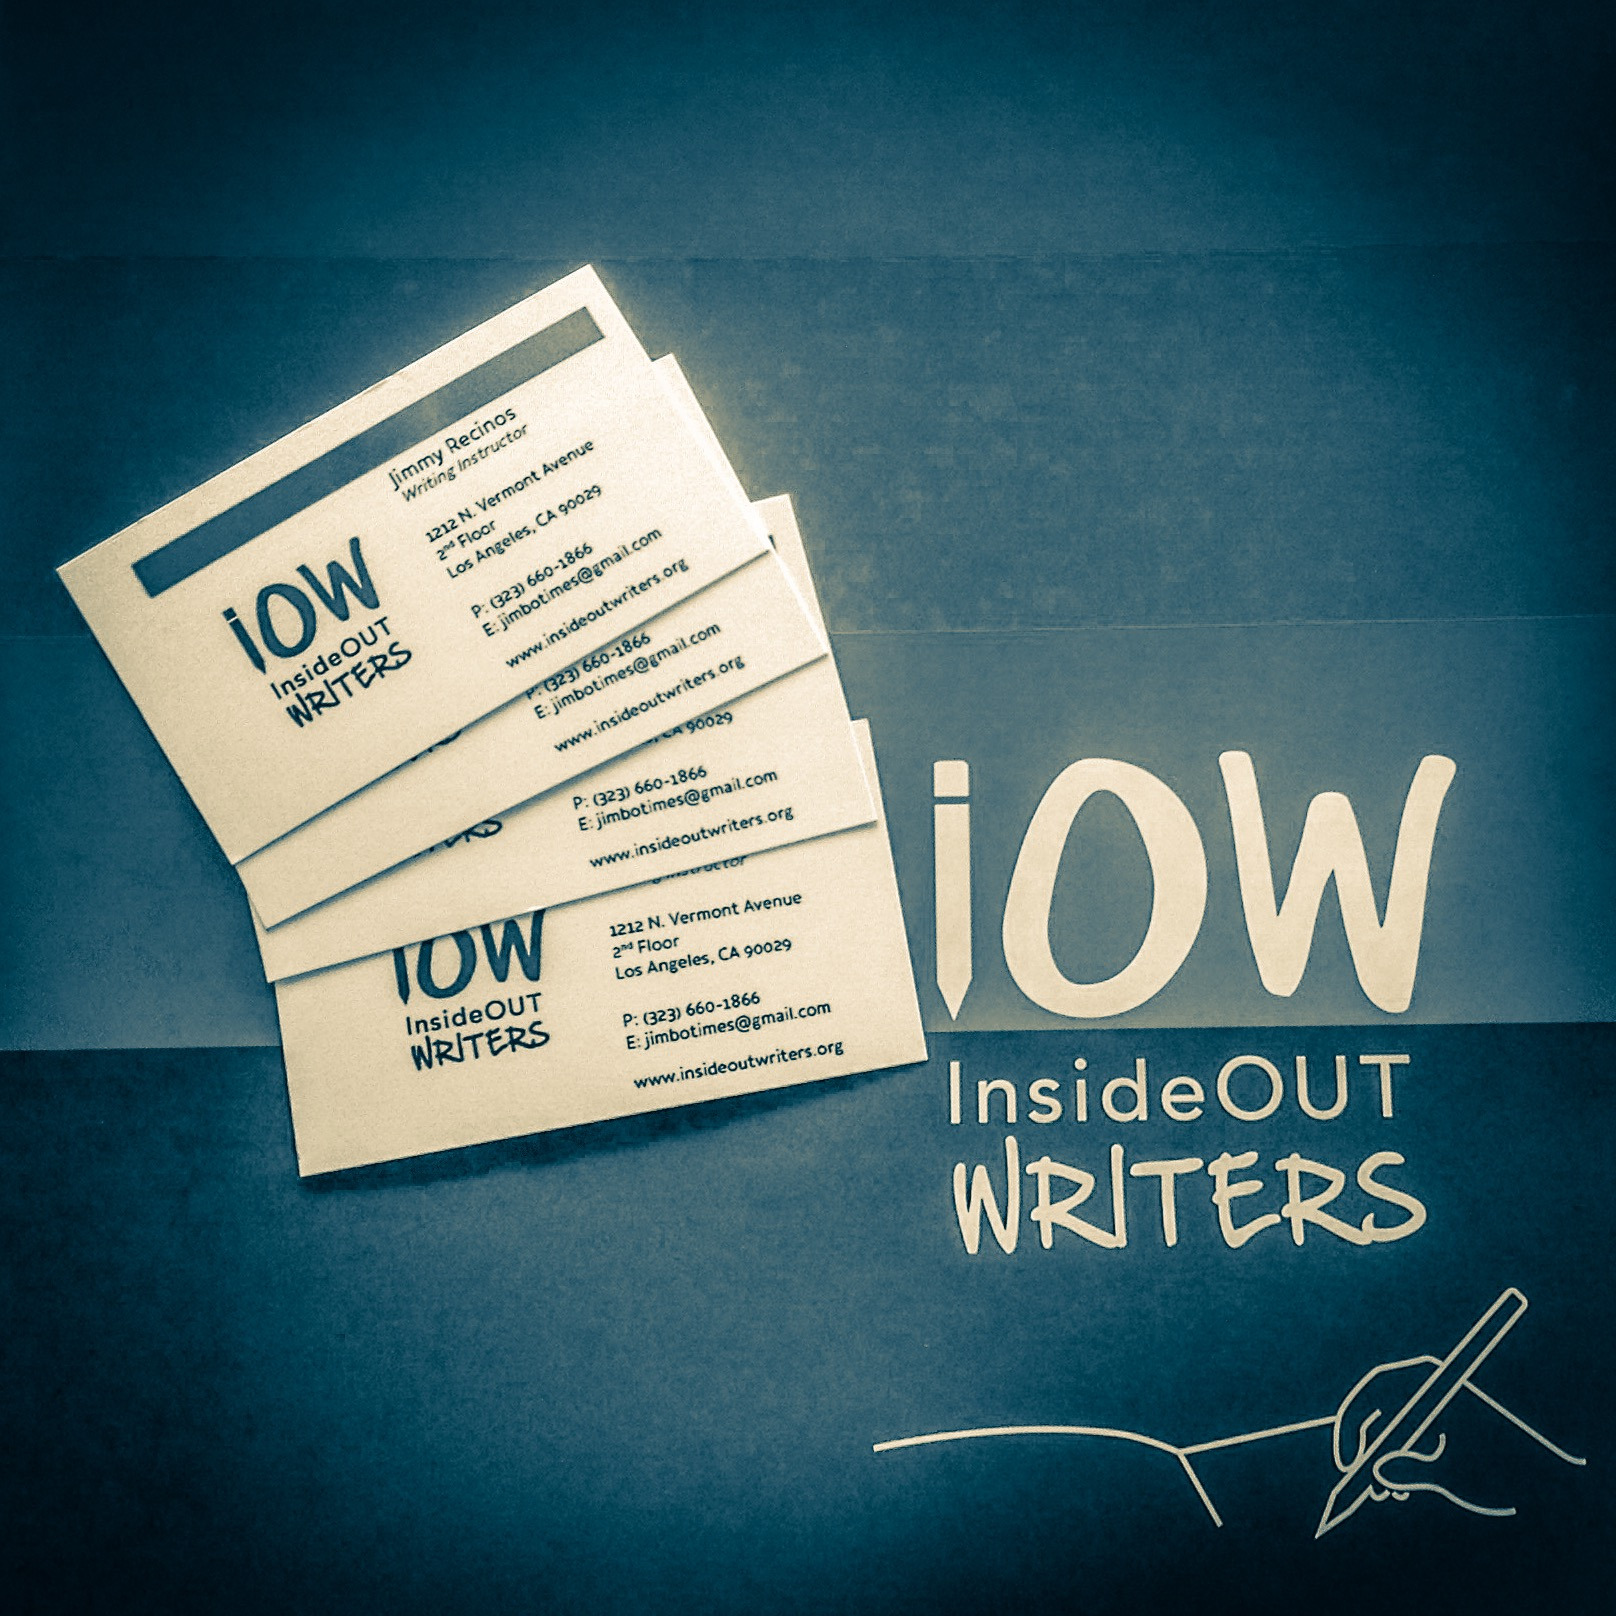 Inside Out Writers business cards atop a folder from the organization